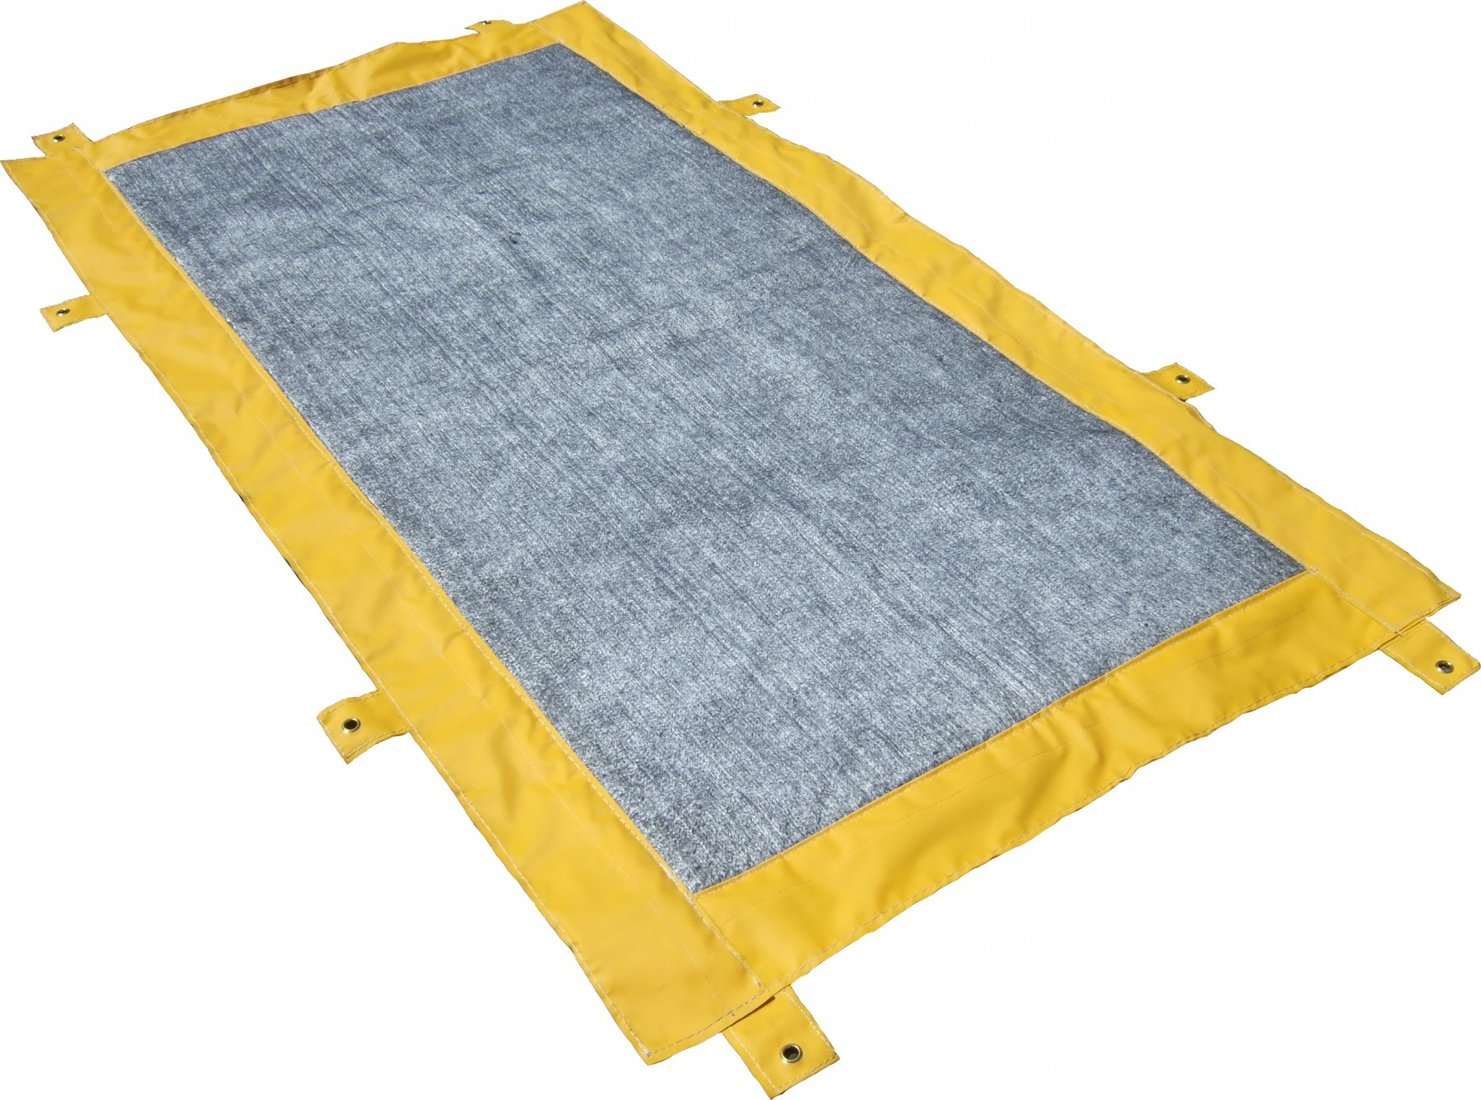 1m x 1.5m (Small) Disinfectant Mat (1m x 1.5m Small)